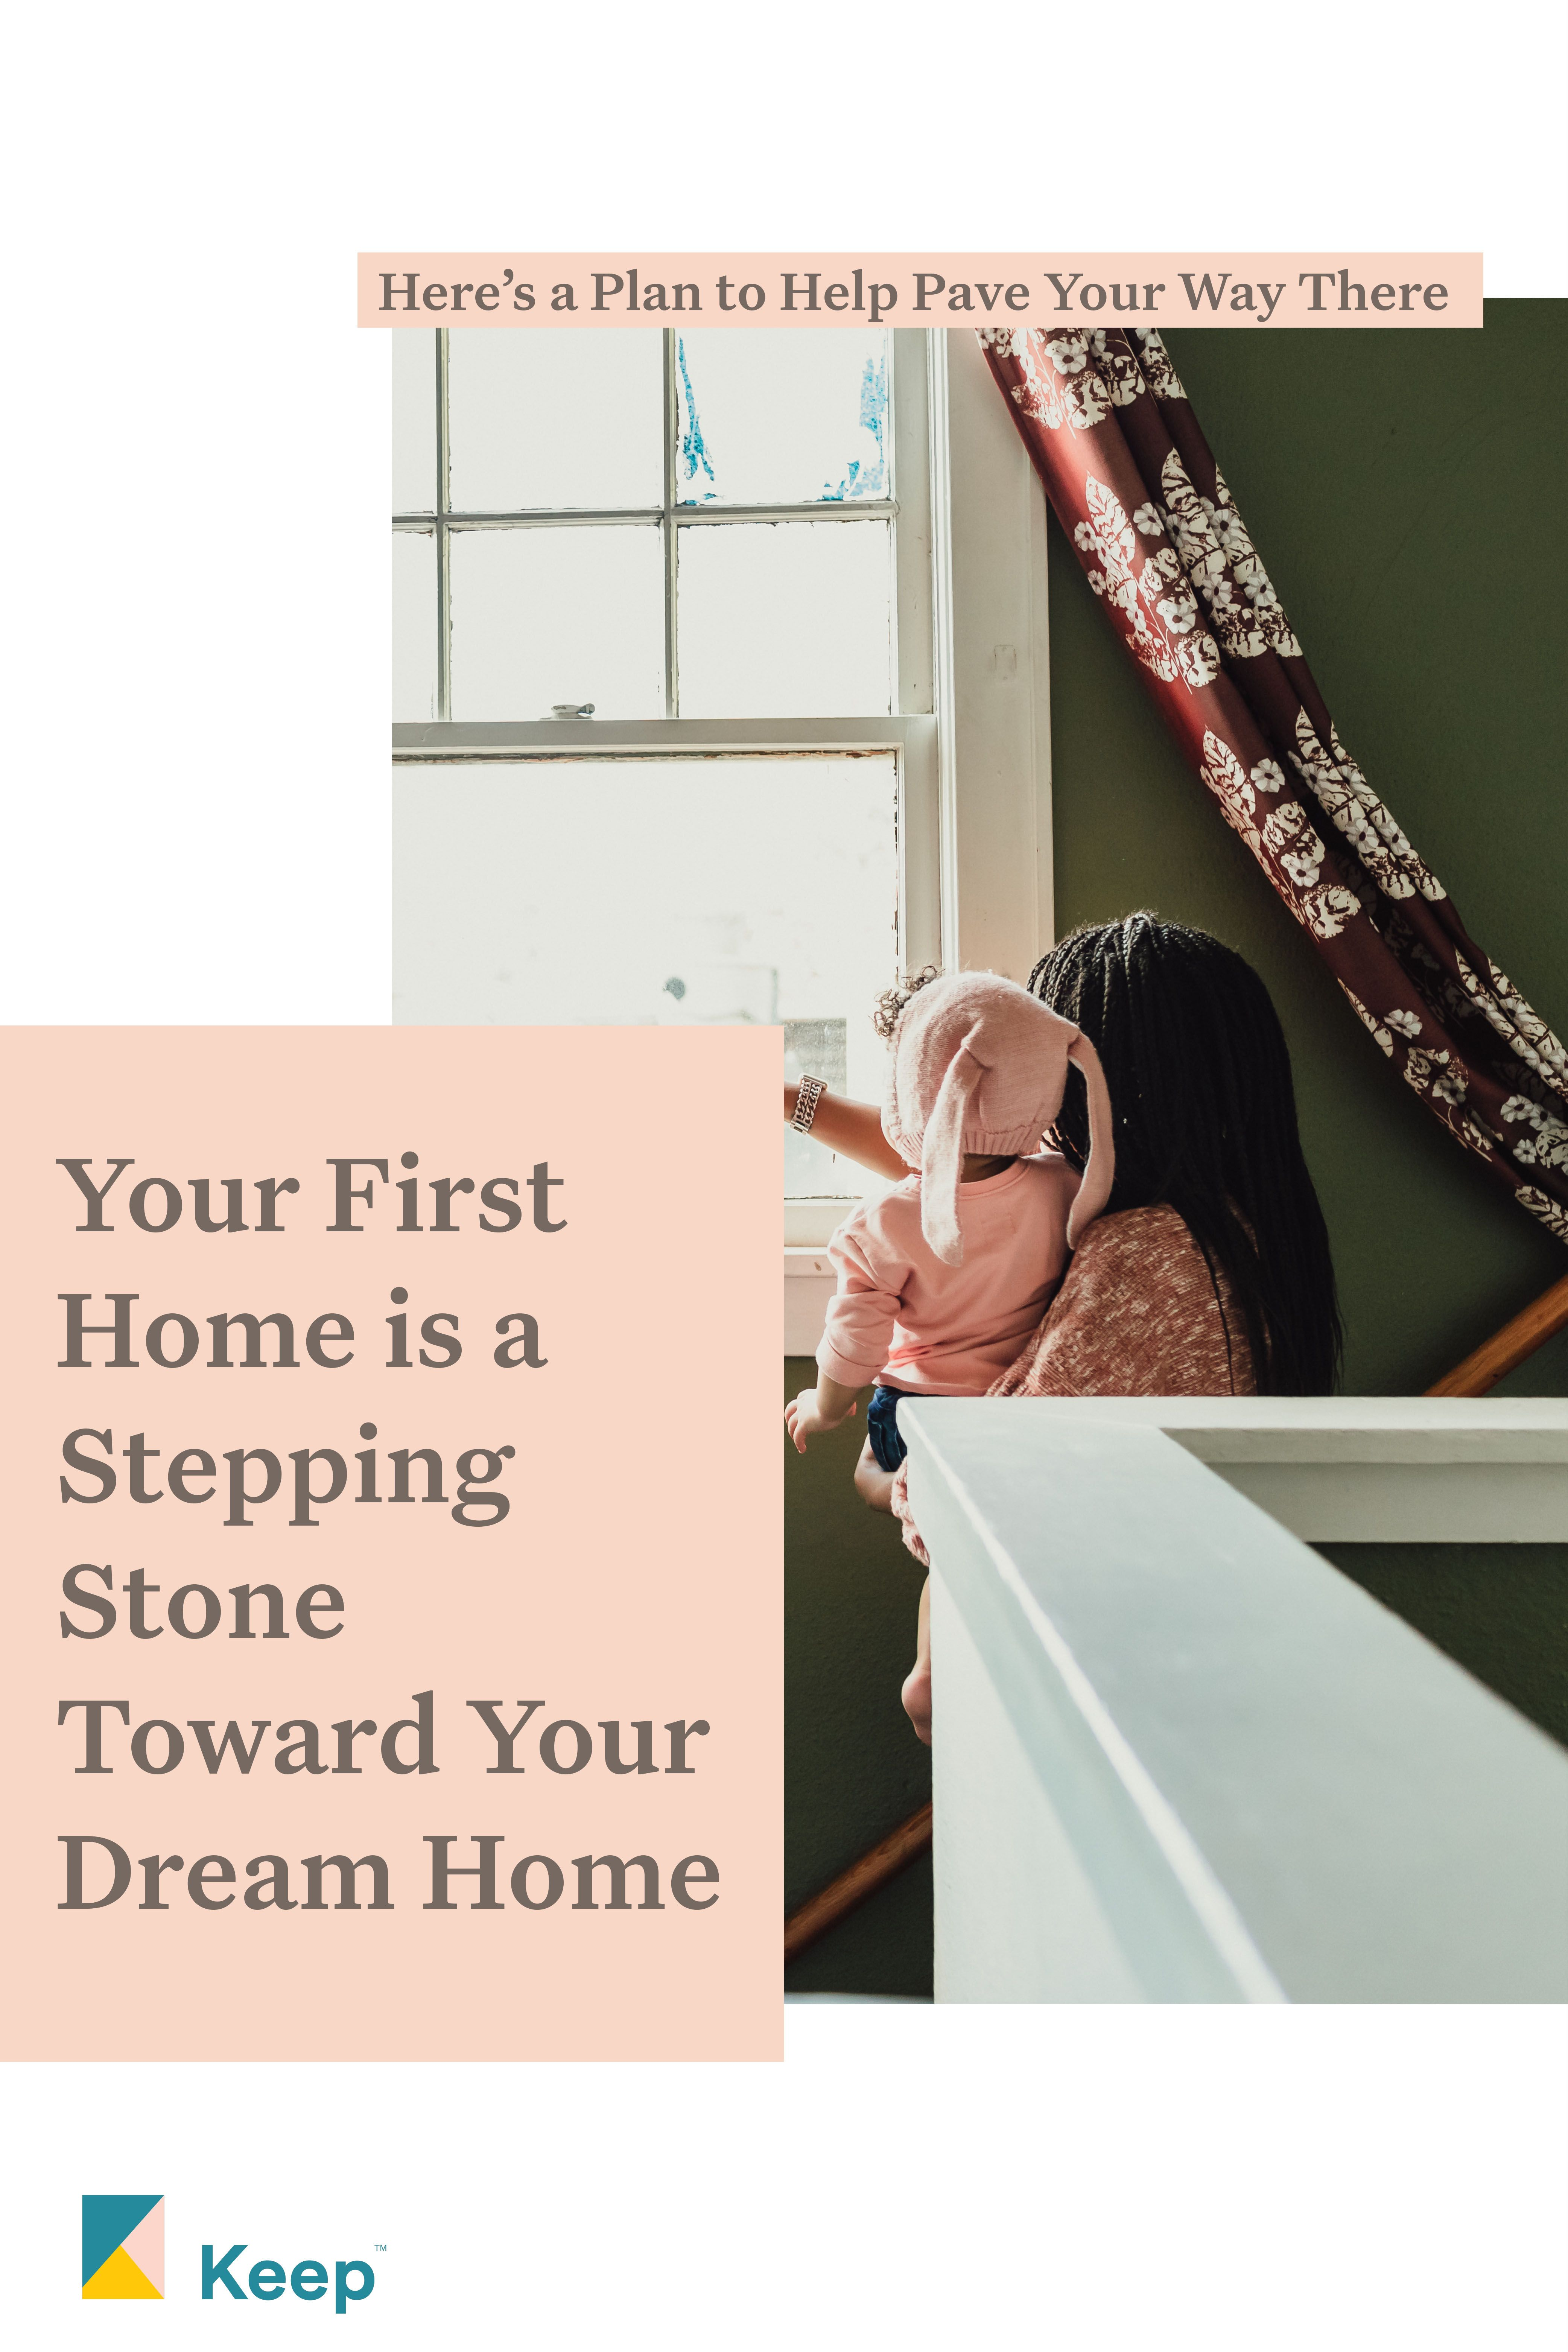 If you can't afford your dream home right now, look on the bright side: The home you can afford is a stepping stone to get there! #home #homeownership #dreamhome #buy #plan